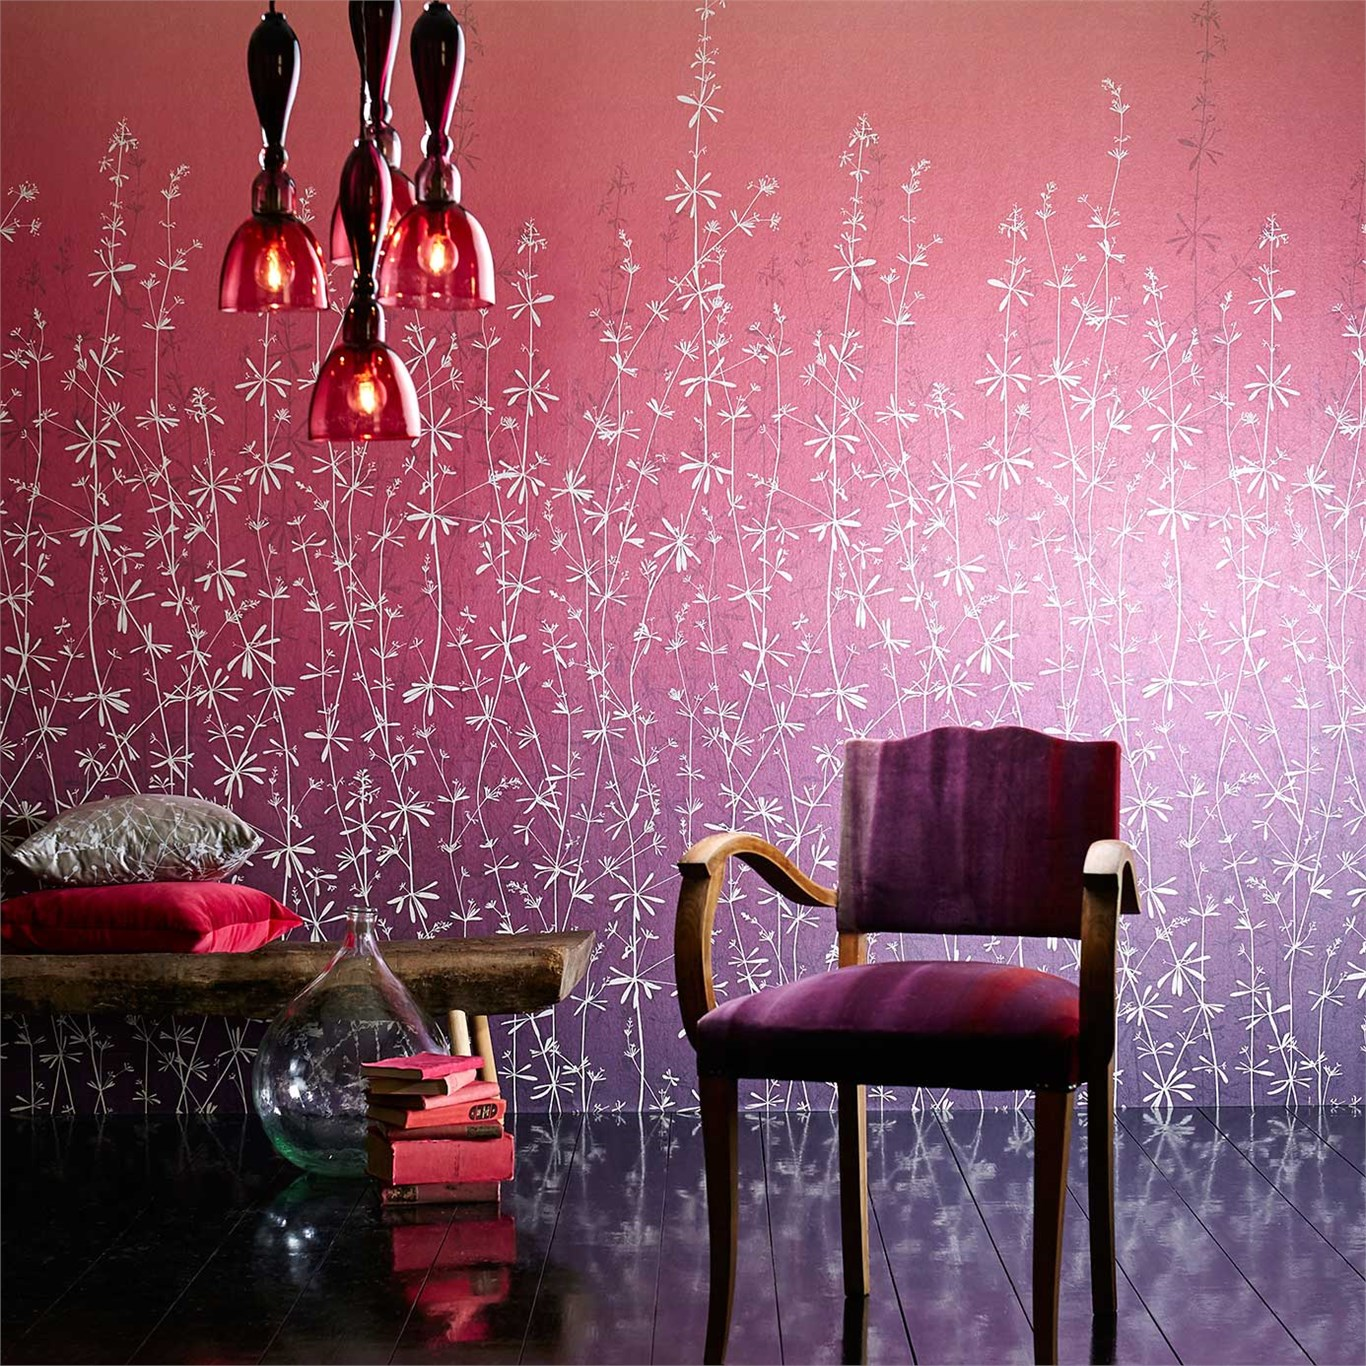 Hortelano Wallpaper From The Callista Collection By Harlequin